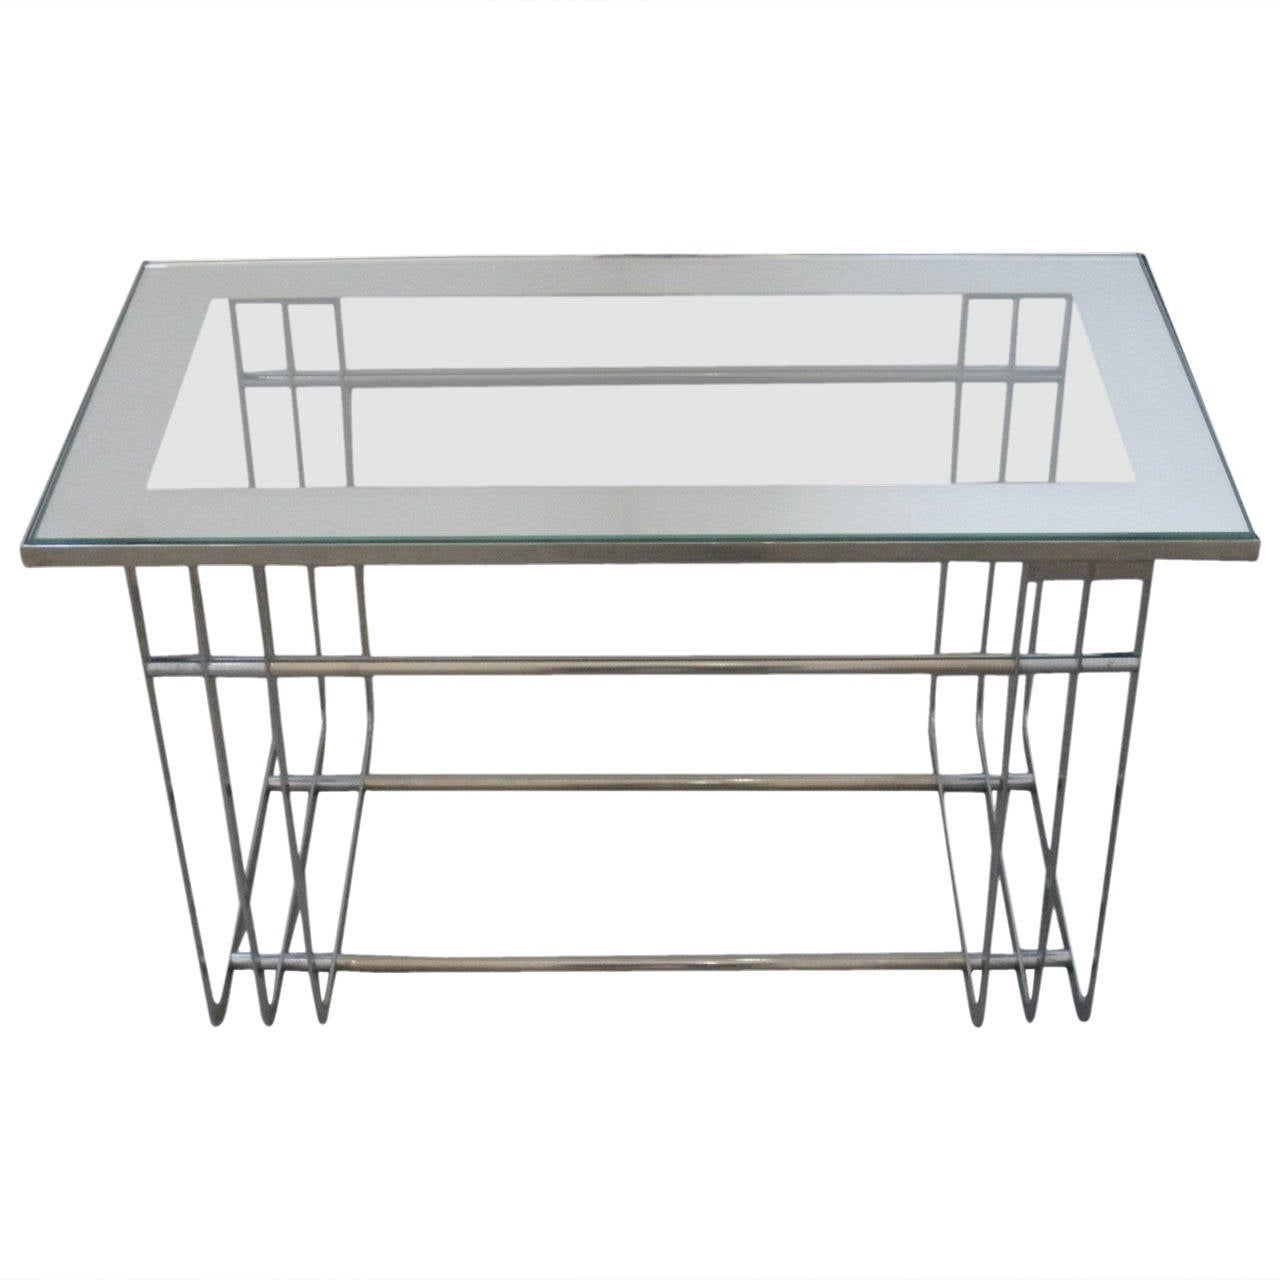 American art deco chrome cocktail table in the style of donald american art deco chrome cocktail table in the style of donald deskey 1930s 1 geotapseo Gallery